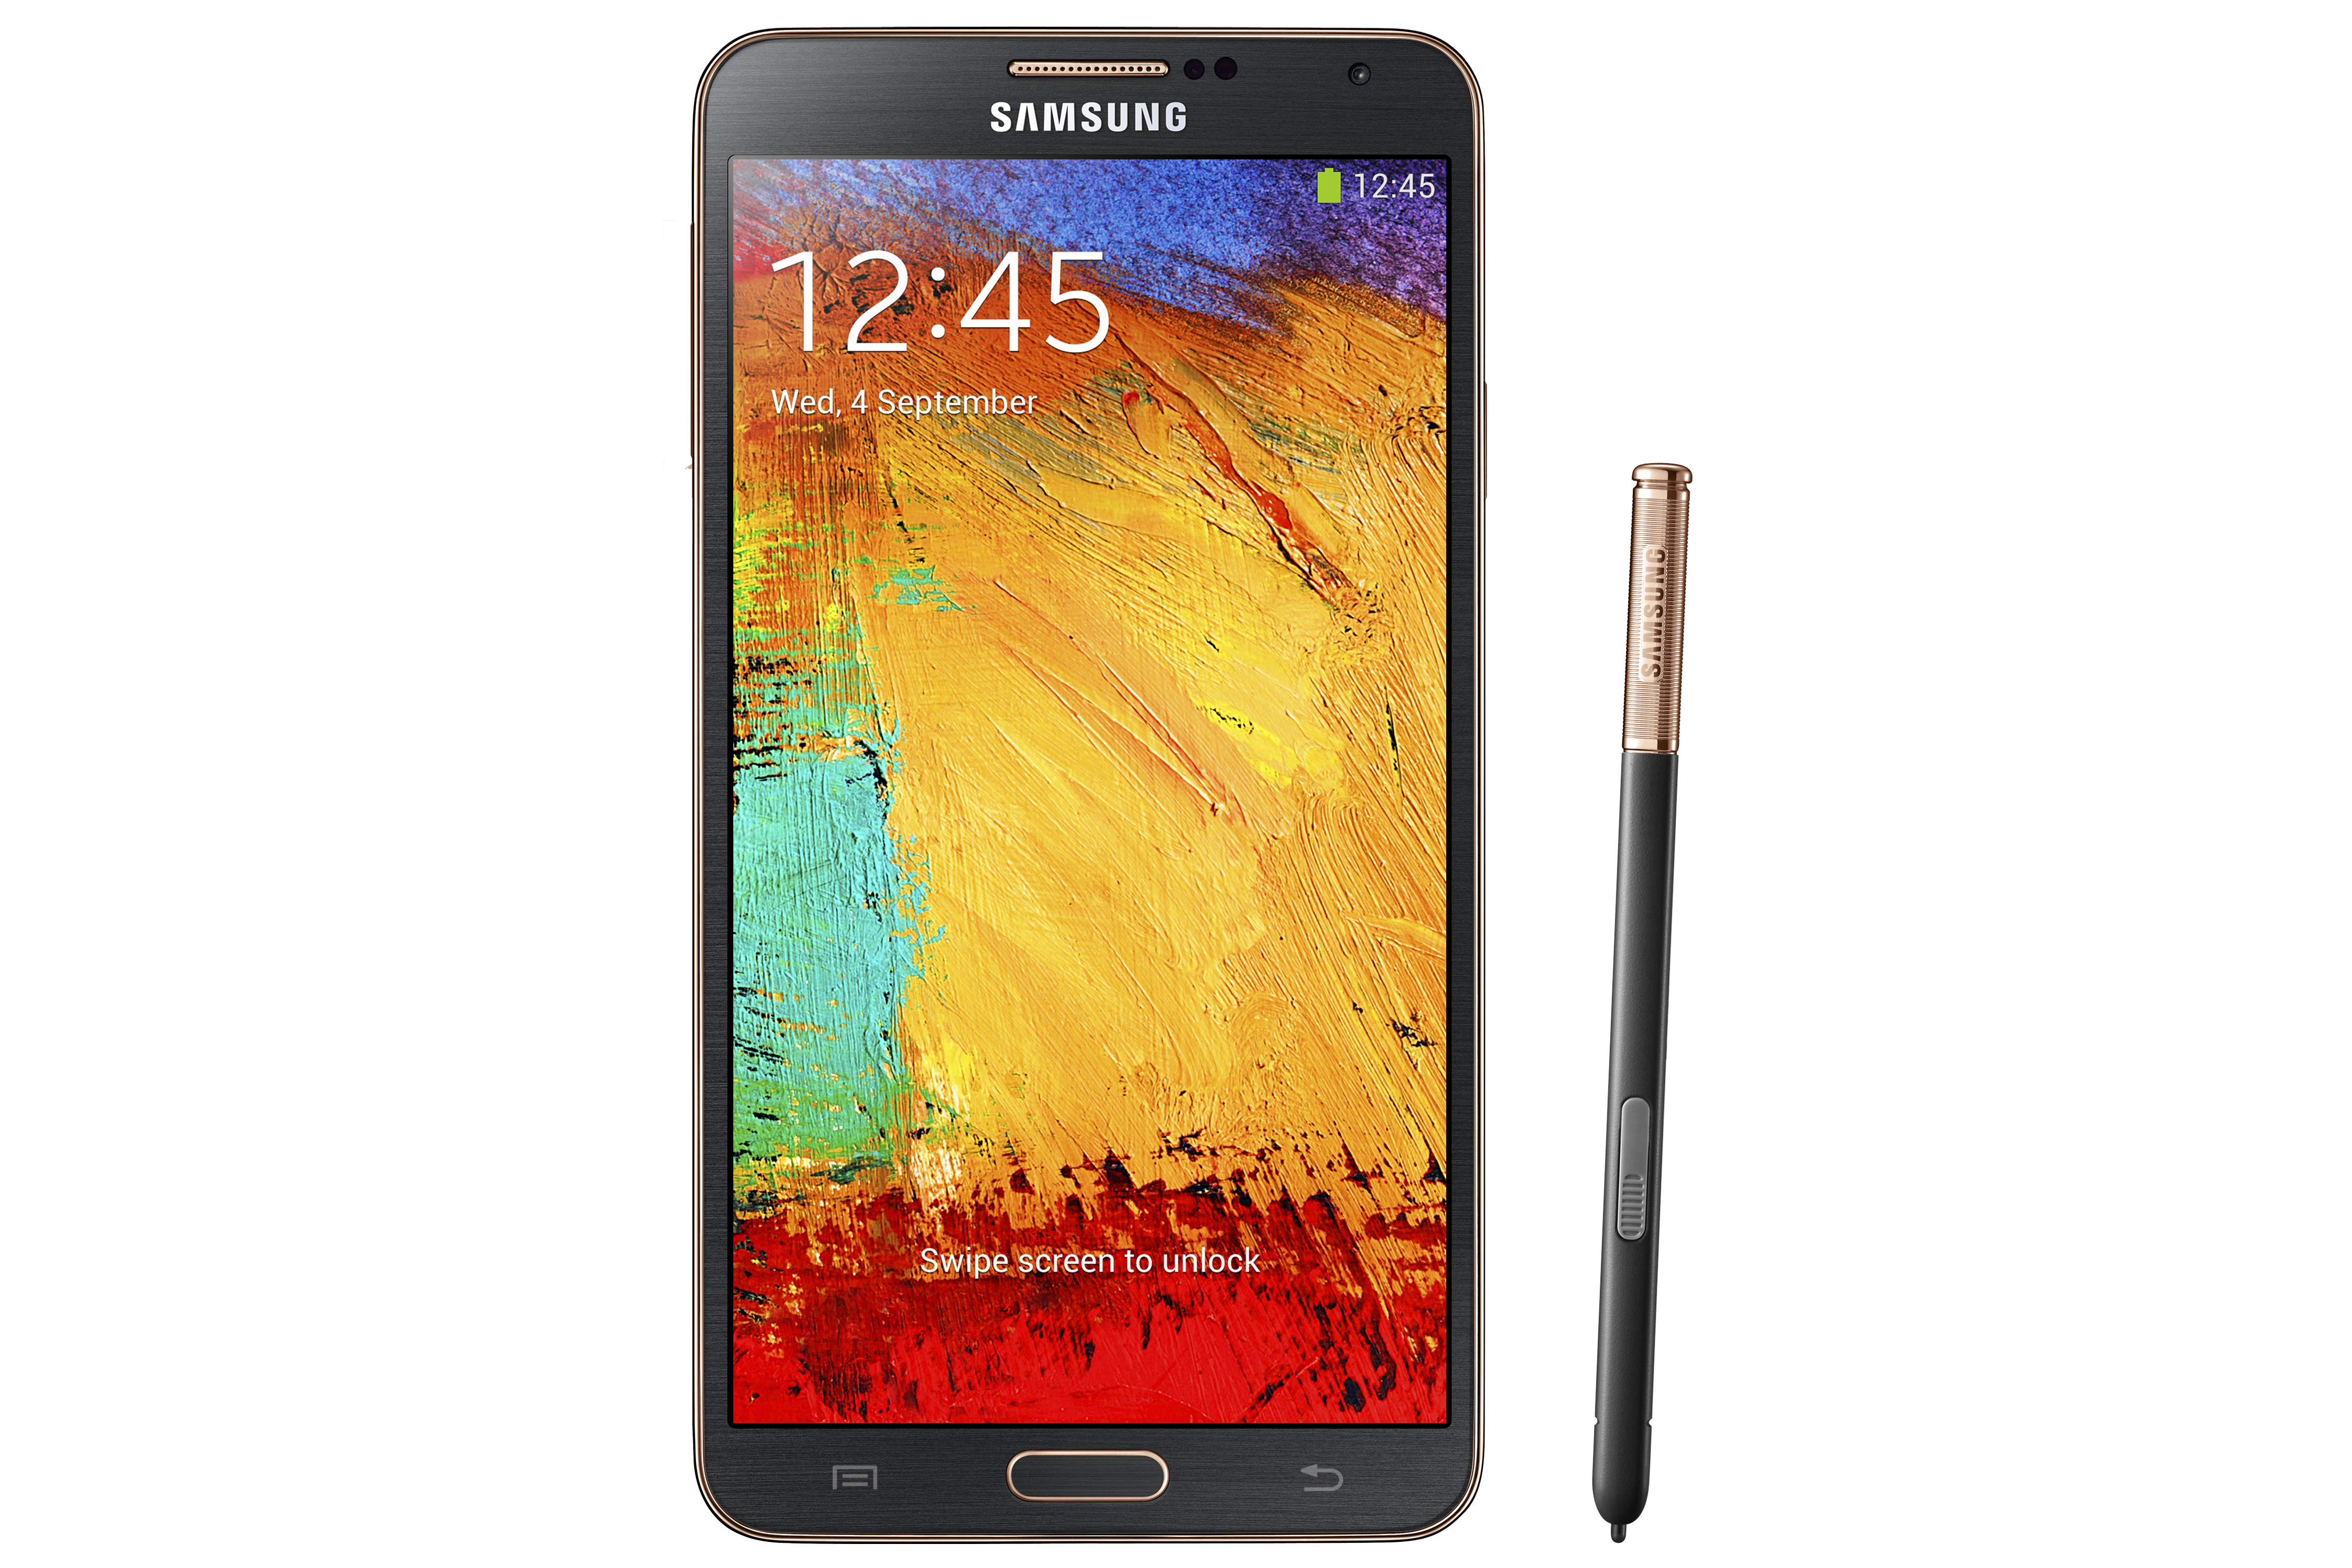 GALAXY Note 3 With LTE with S Pen_Rose Gold Black_Front